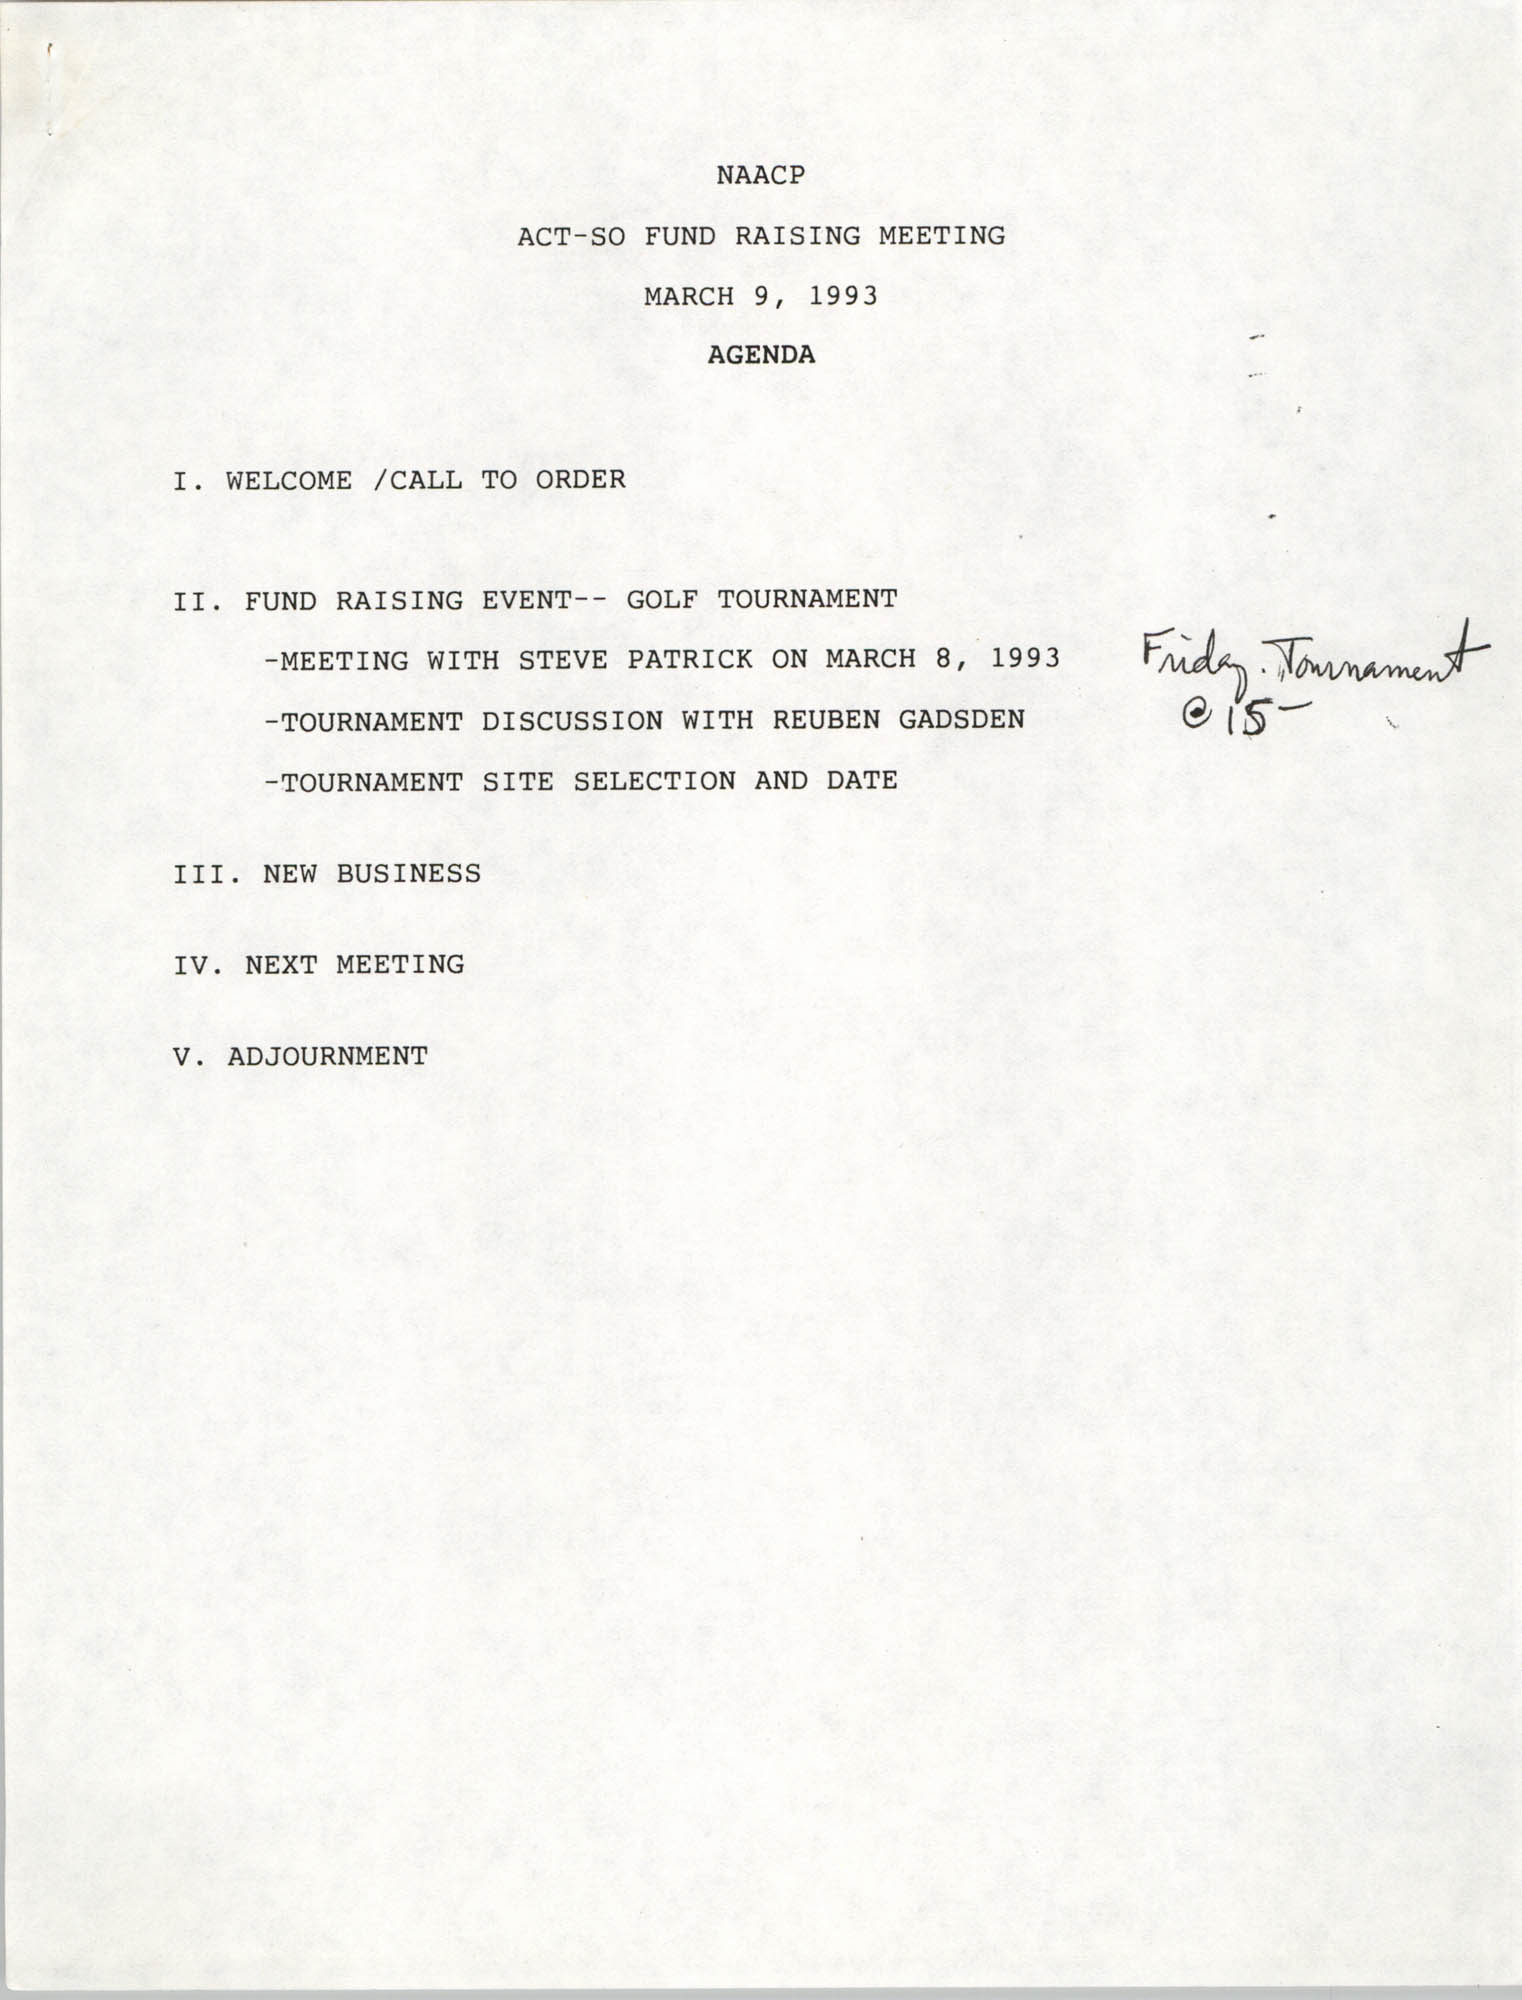 Agenda, ACT-SO Fundraising Meeting, NAACP, March 9, 1993